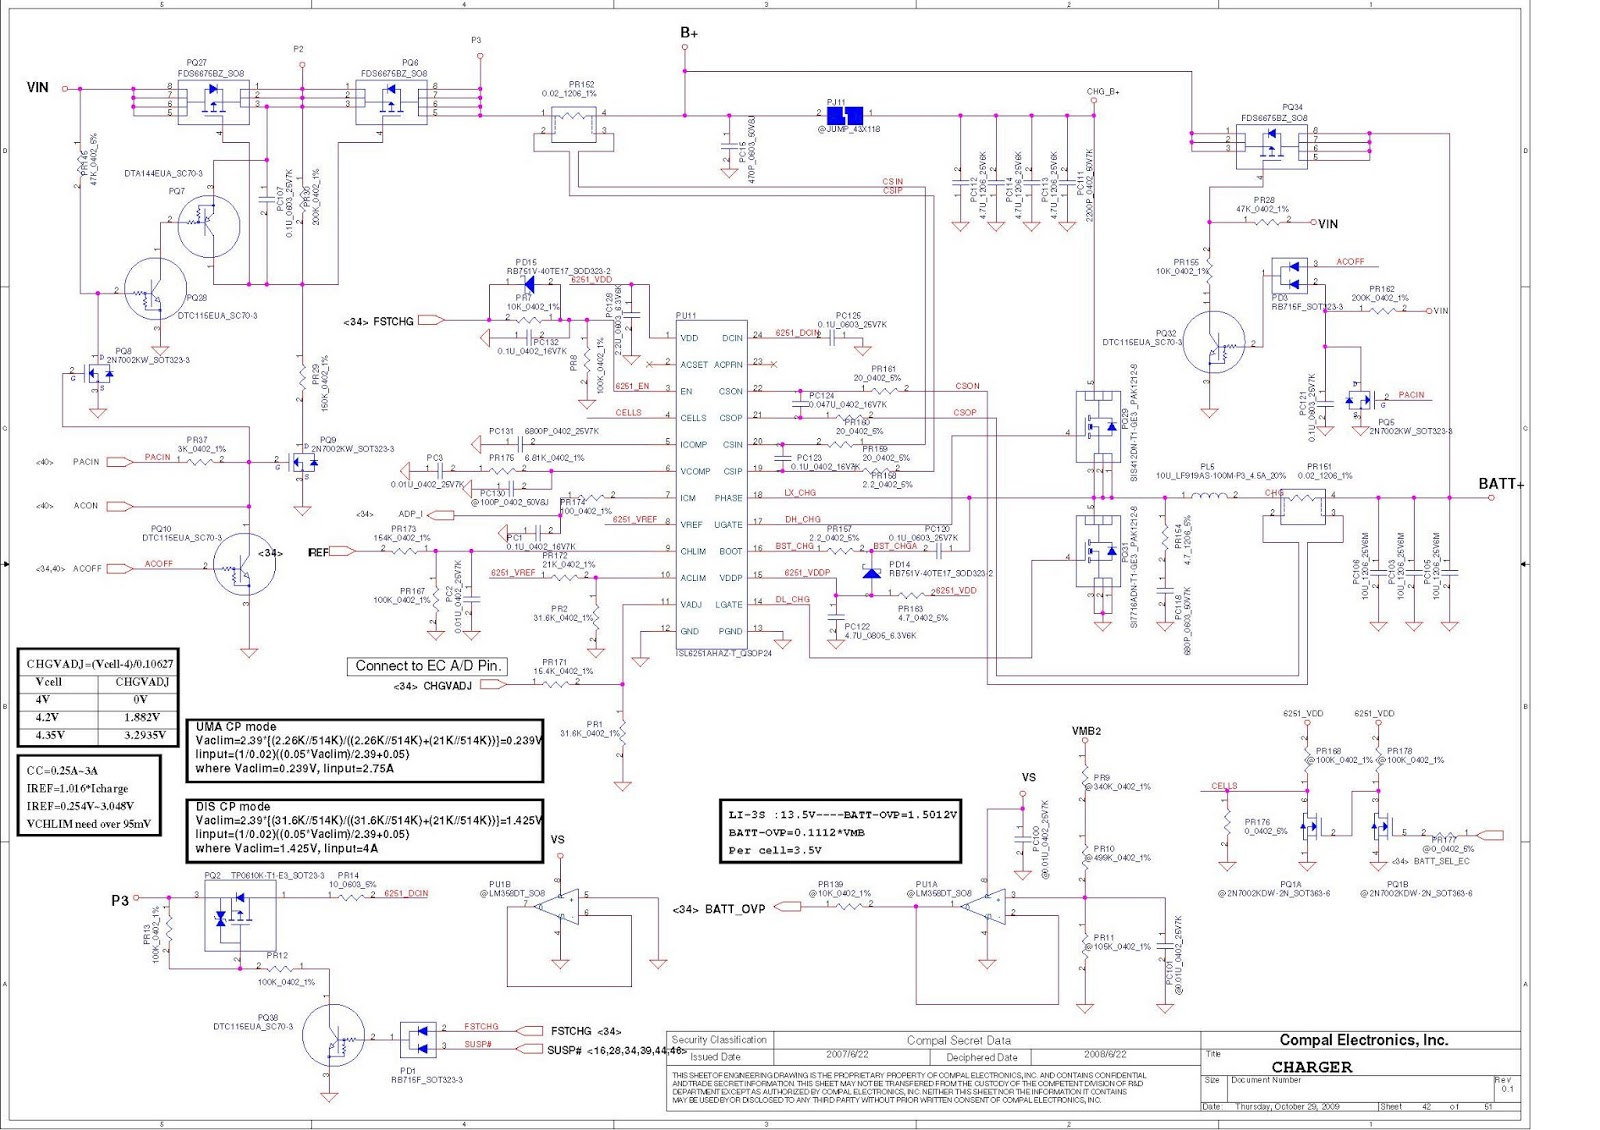 Dell Laptop Power Supply Schematic Diagrams Circuit Diagram Hp Battery Oplaadpin Zeer Warm Also Wiring Supplies